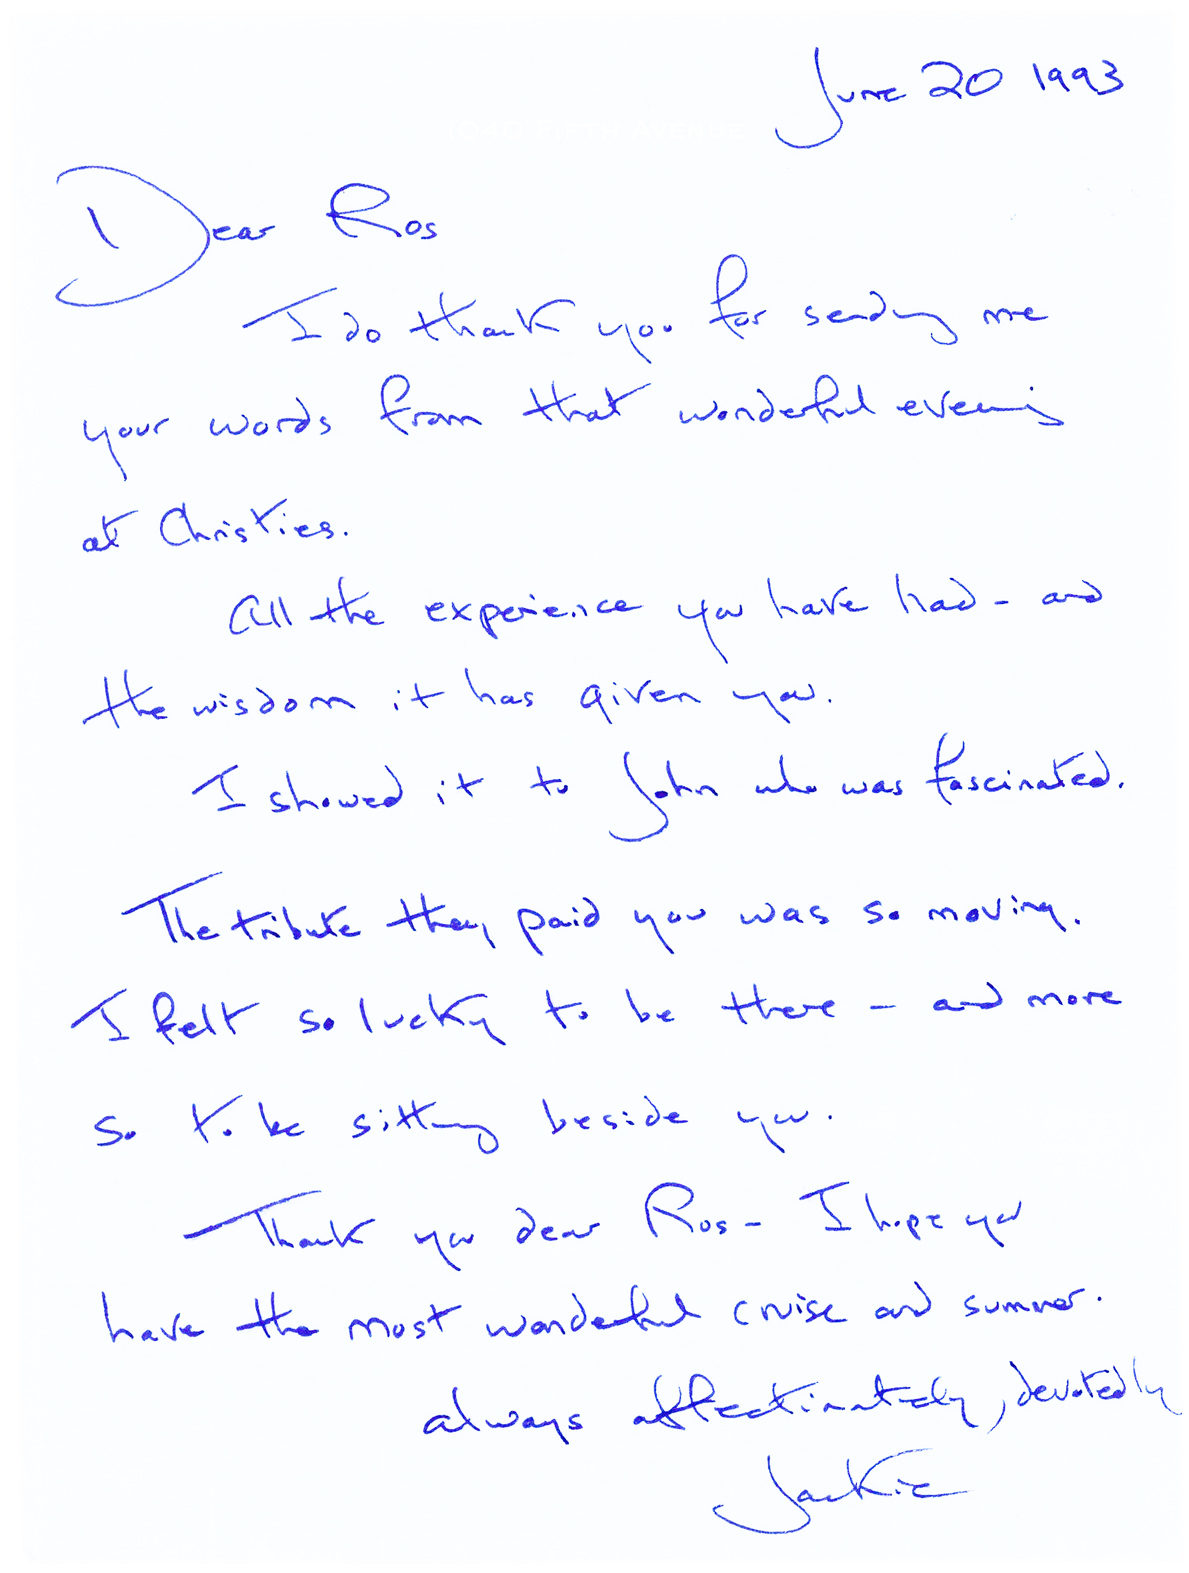 Letter to her former paramour and JFK appointee, Roswell Gilpatric